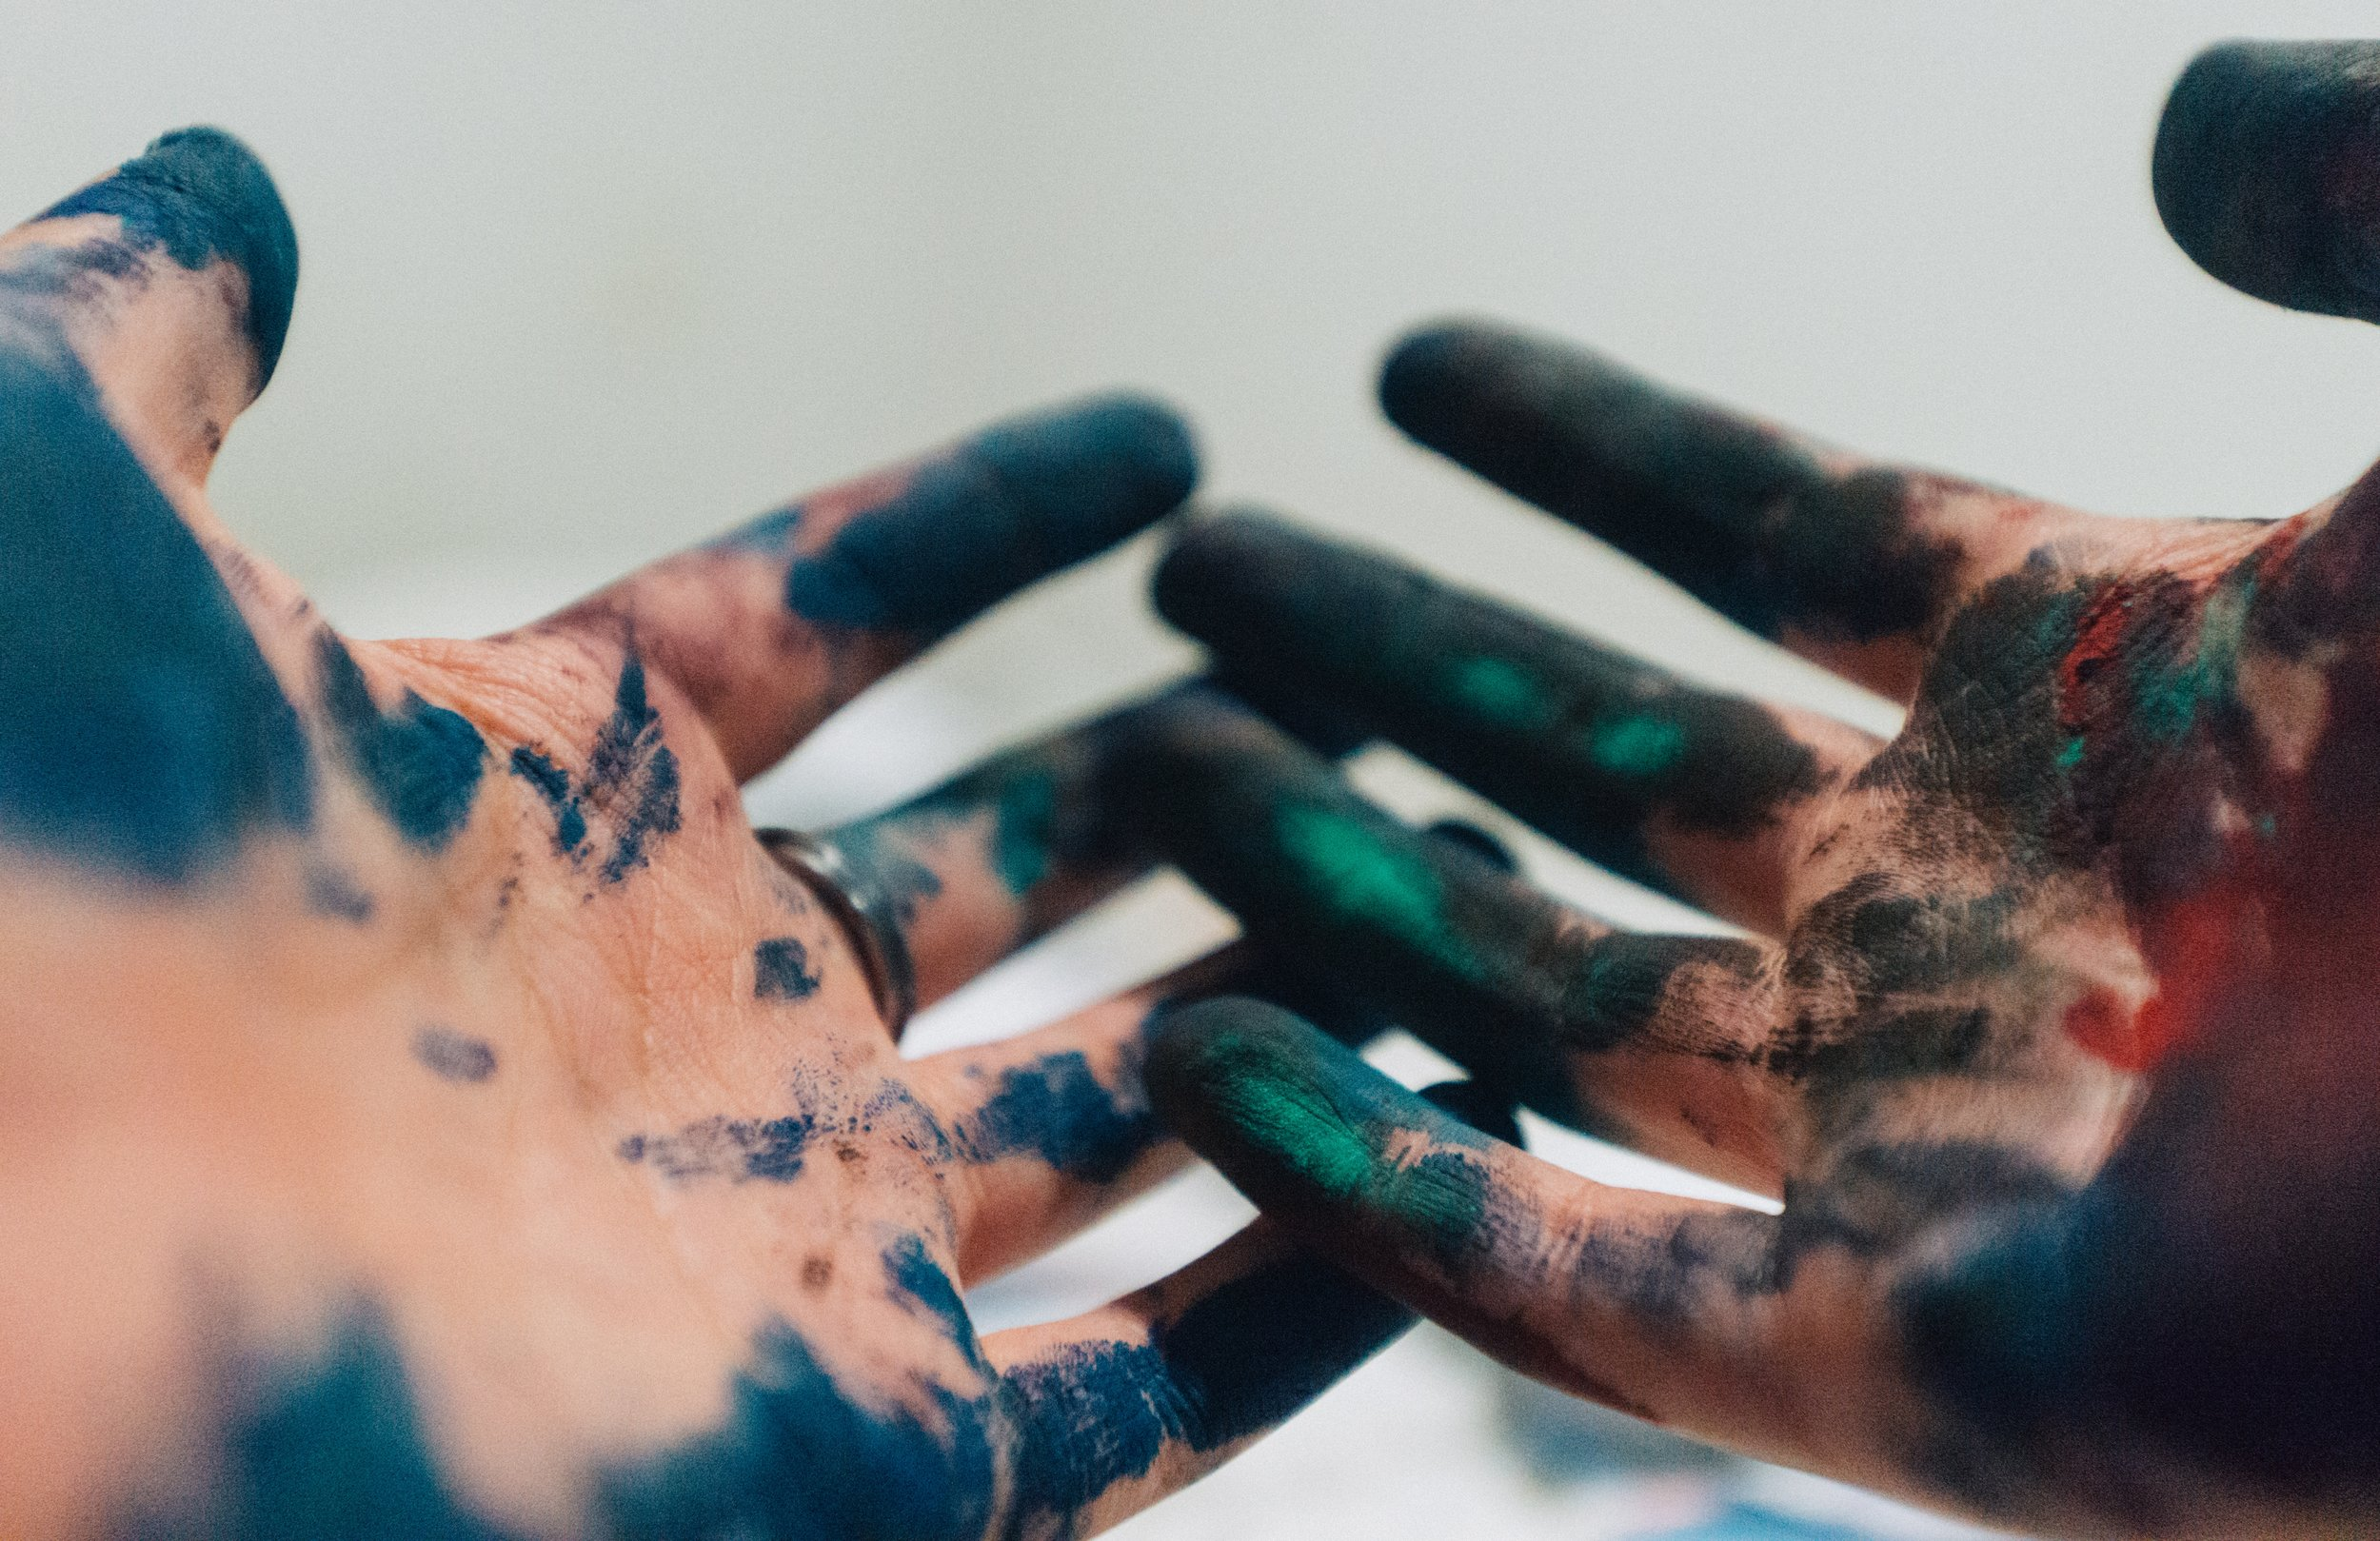 Stained Hands, Clean Heart